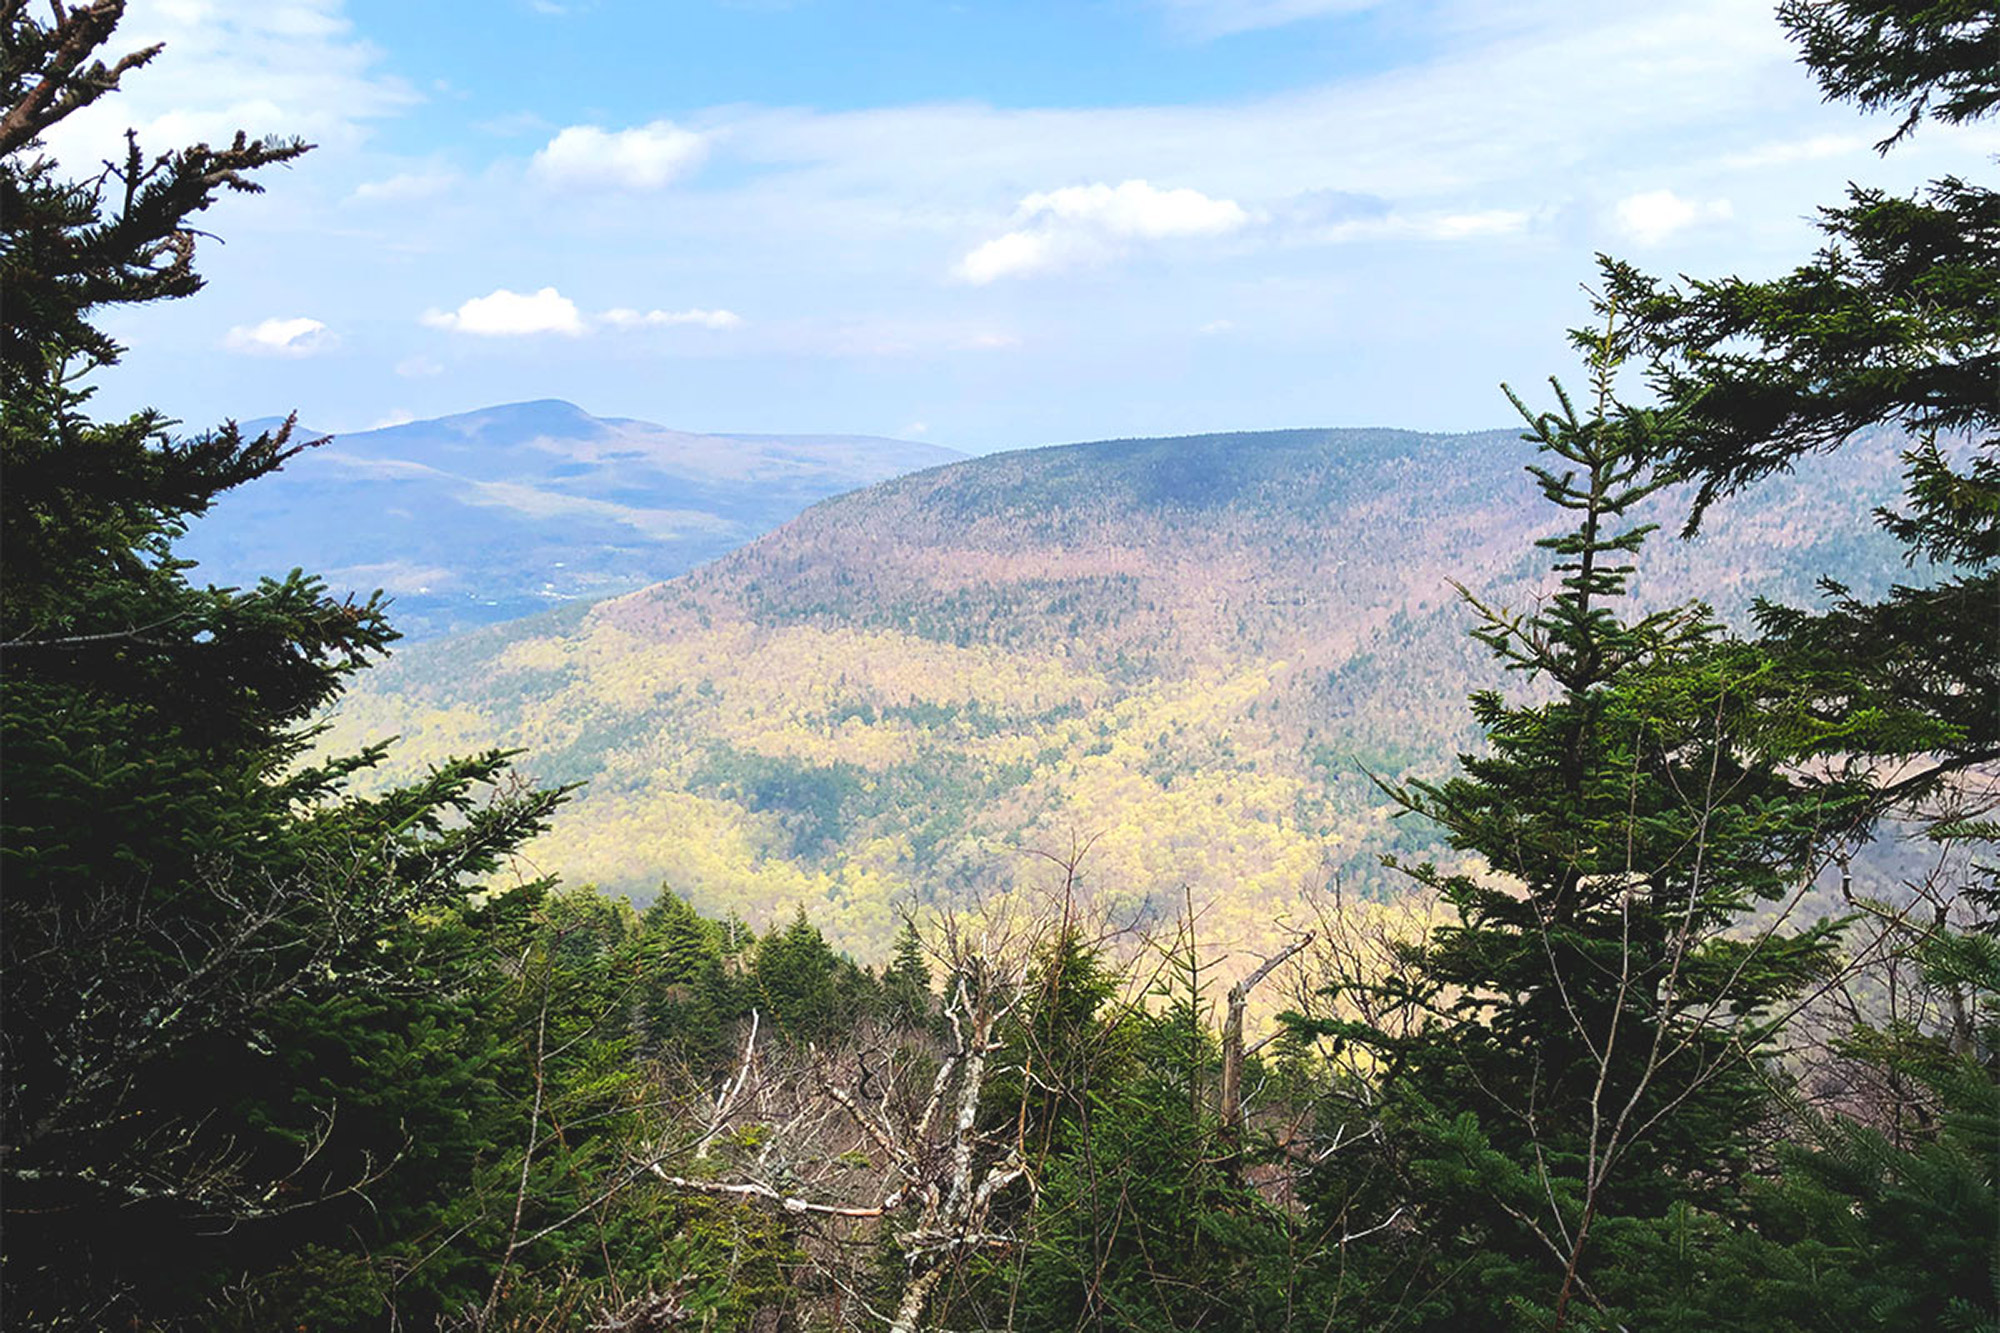 A view from an outlook just shy of Plateau Mountain's wooded summit. | Credit: John Lepak